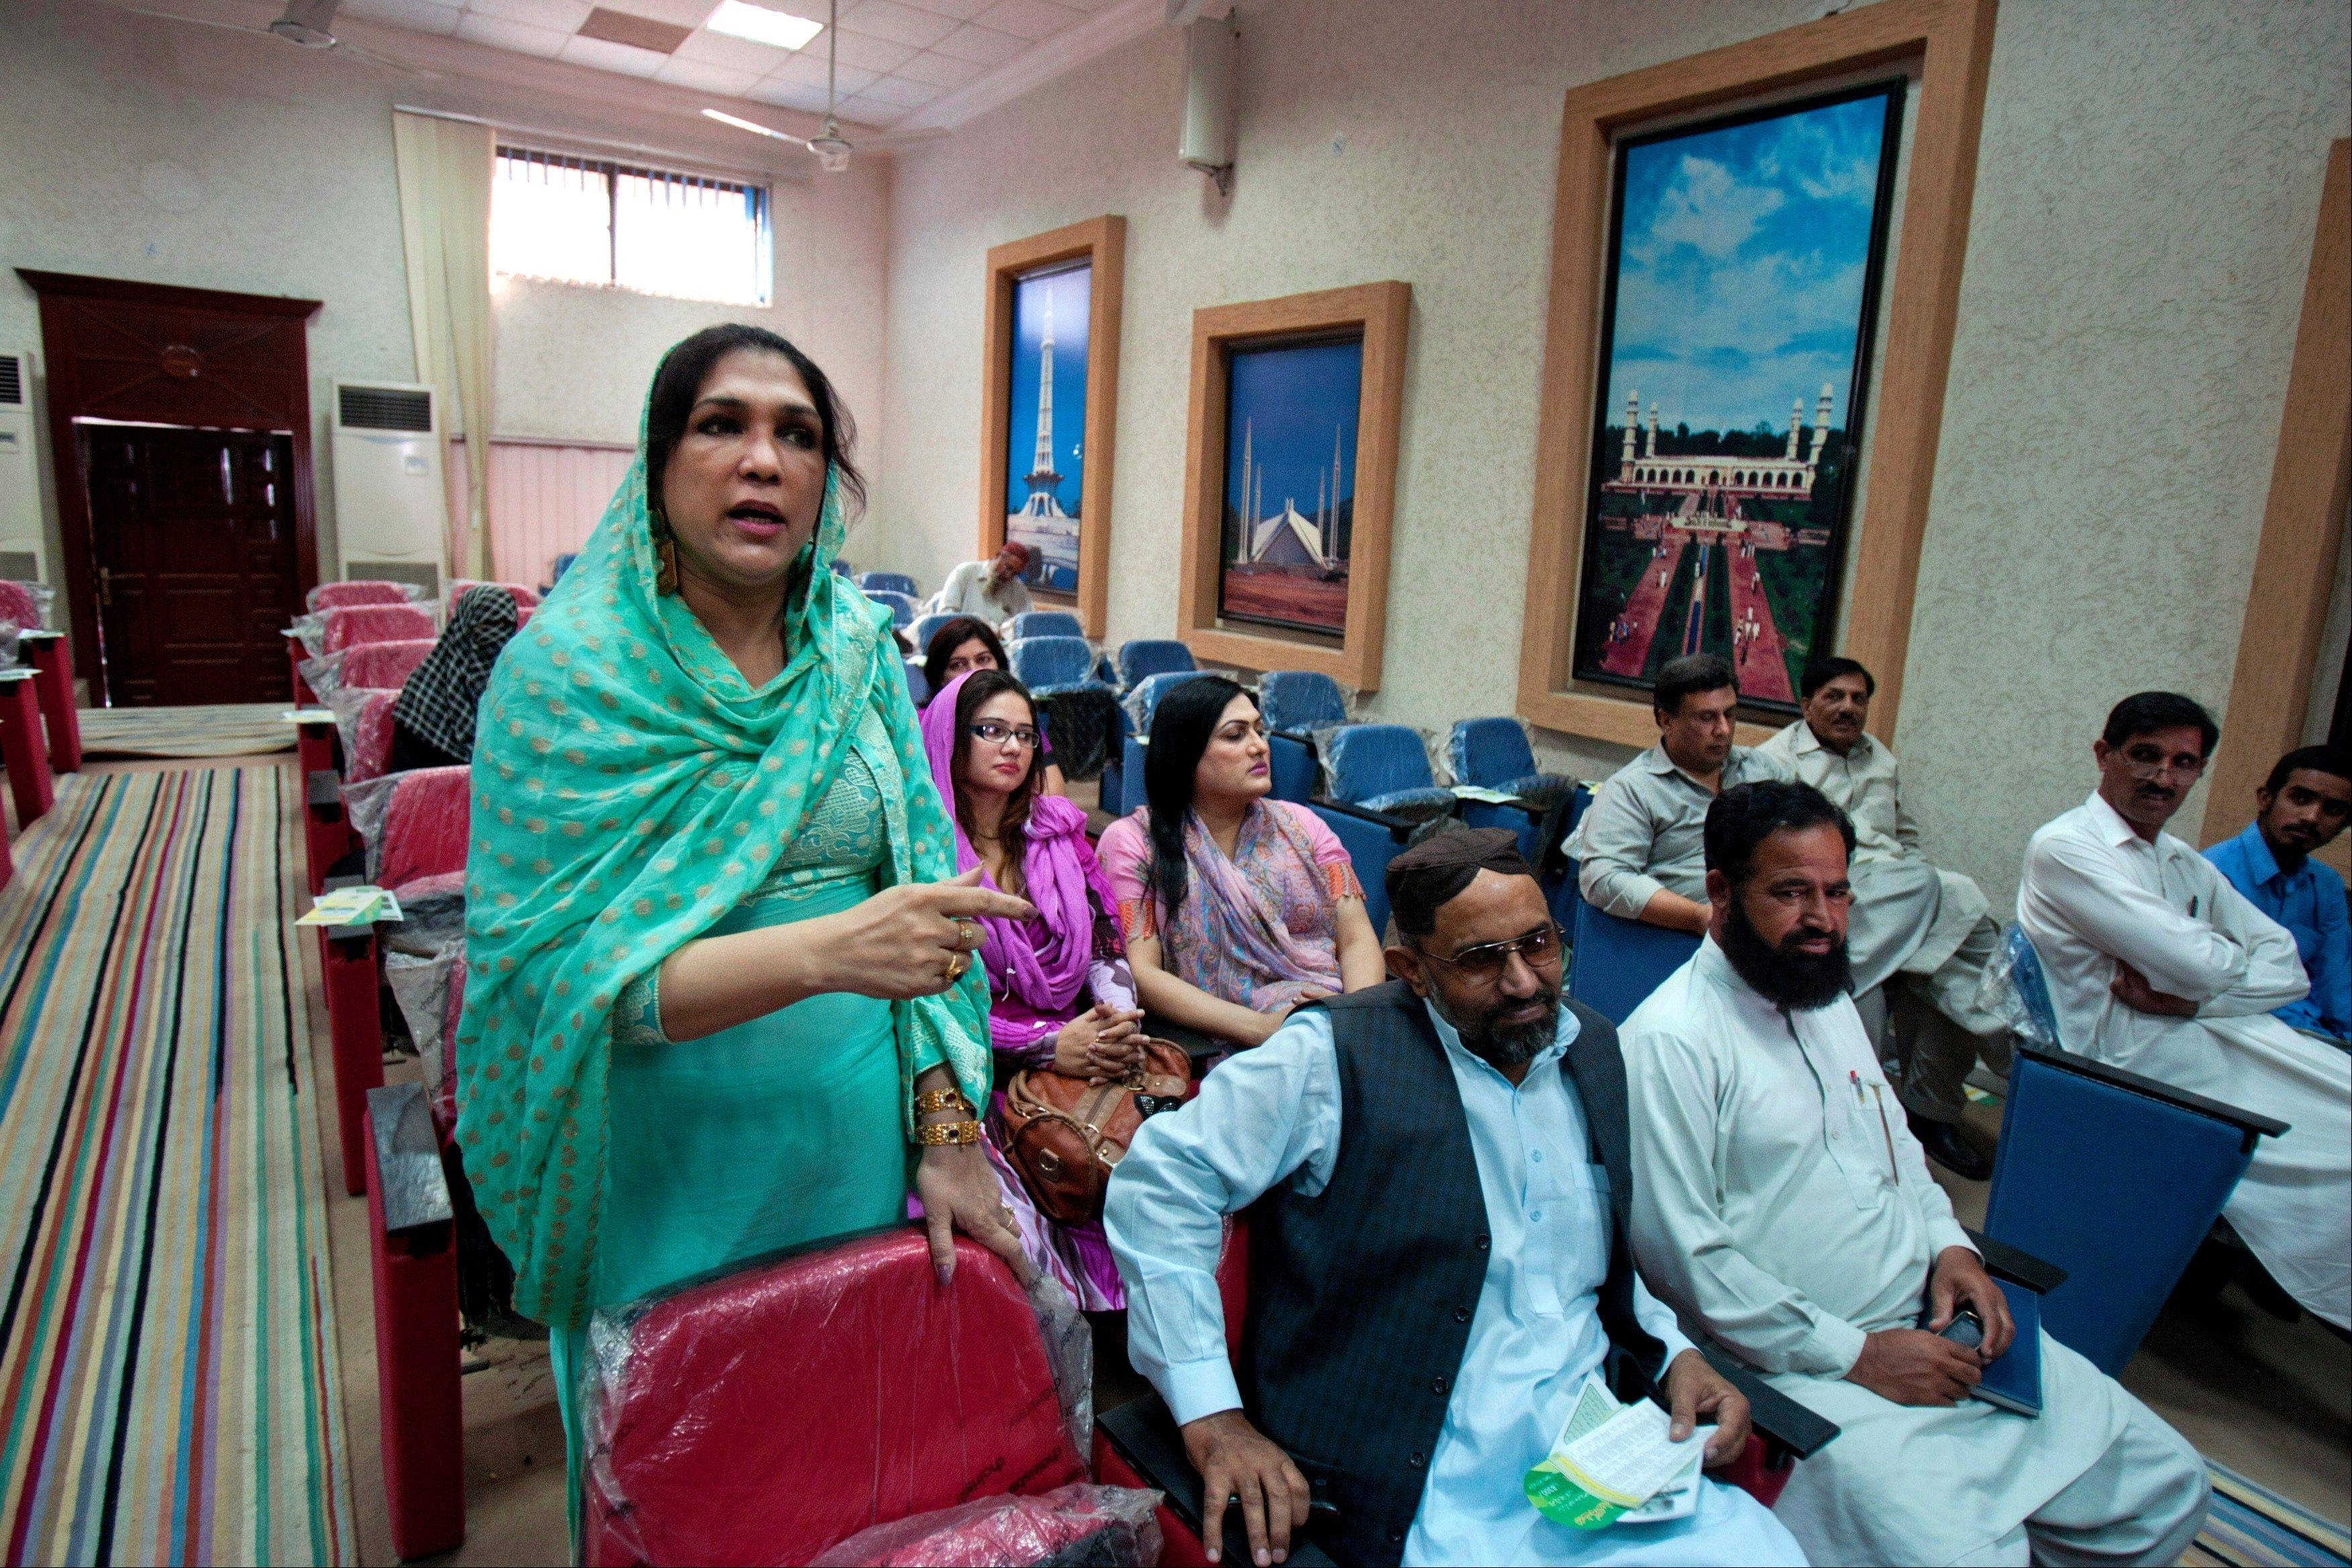 Almas Bobby, 42, left, the head of Pakistan's transgender community, speaks at a seminar organized by the Pakistan Election Commission to obtain suggestions for upcoming general election in Rawalpindi, Pakistan.